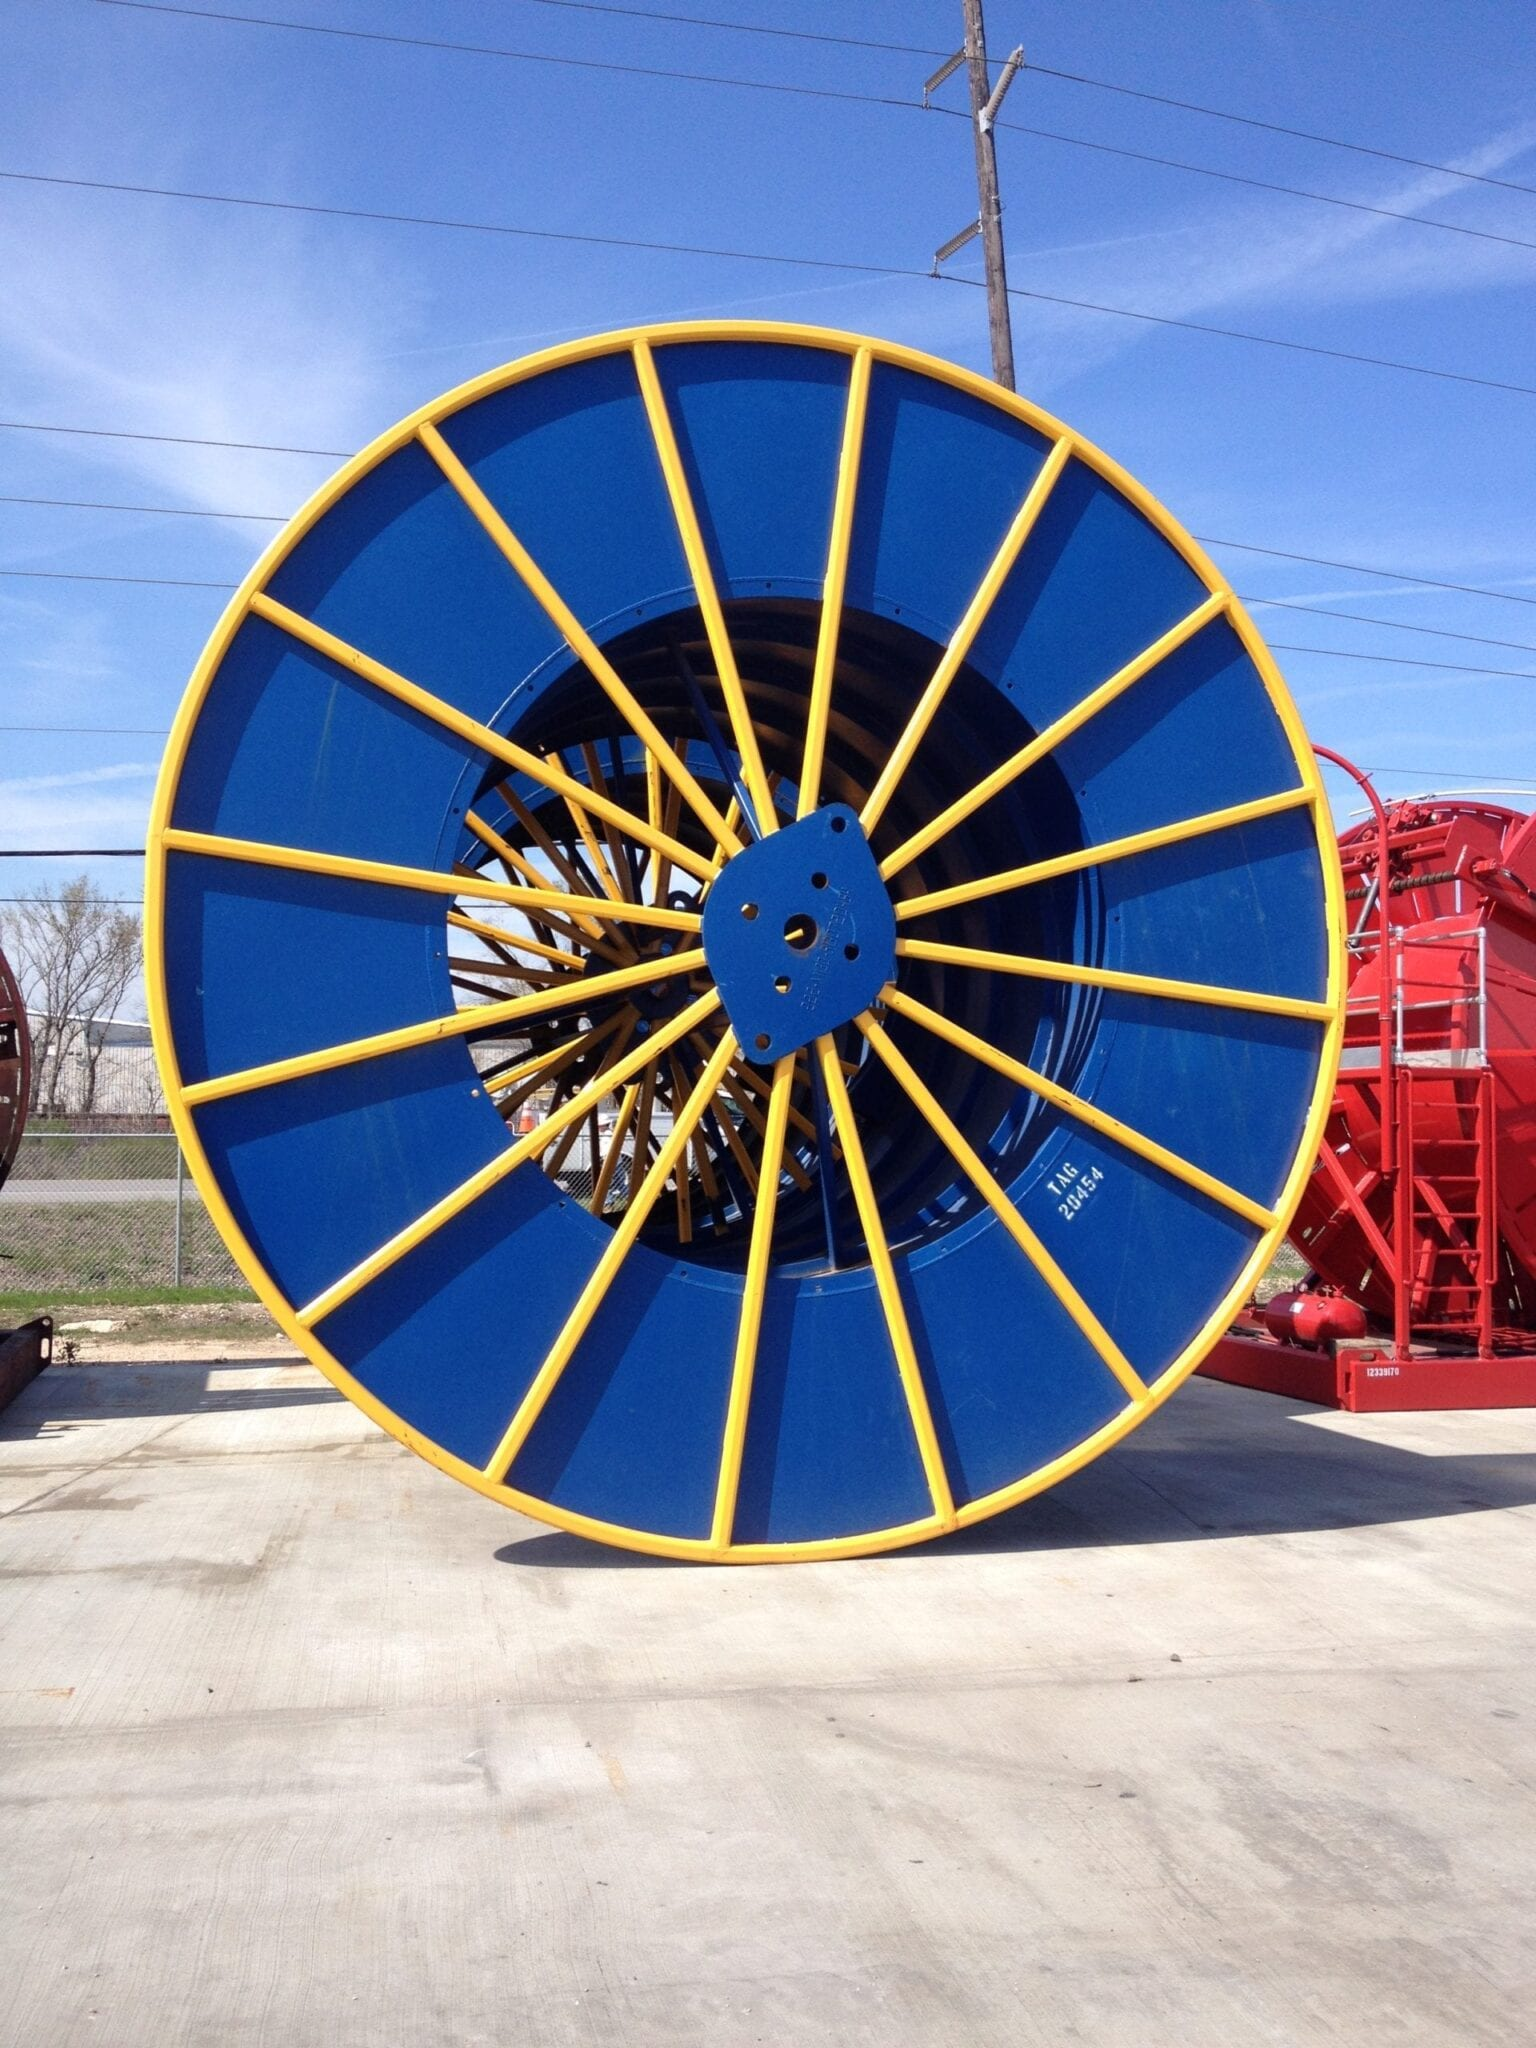 Large coiled tubing spool